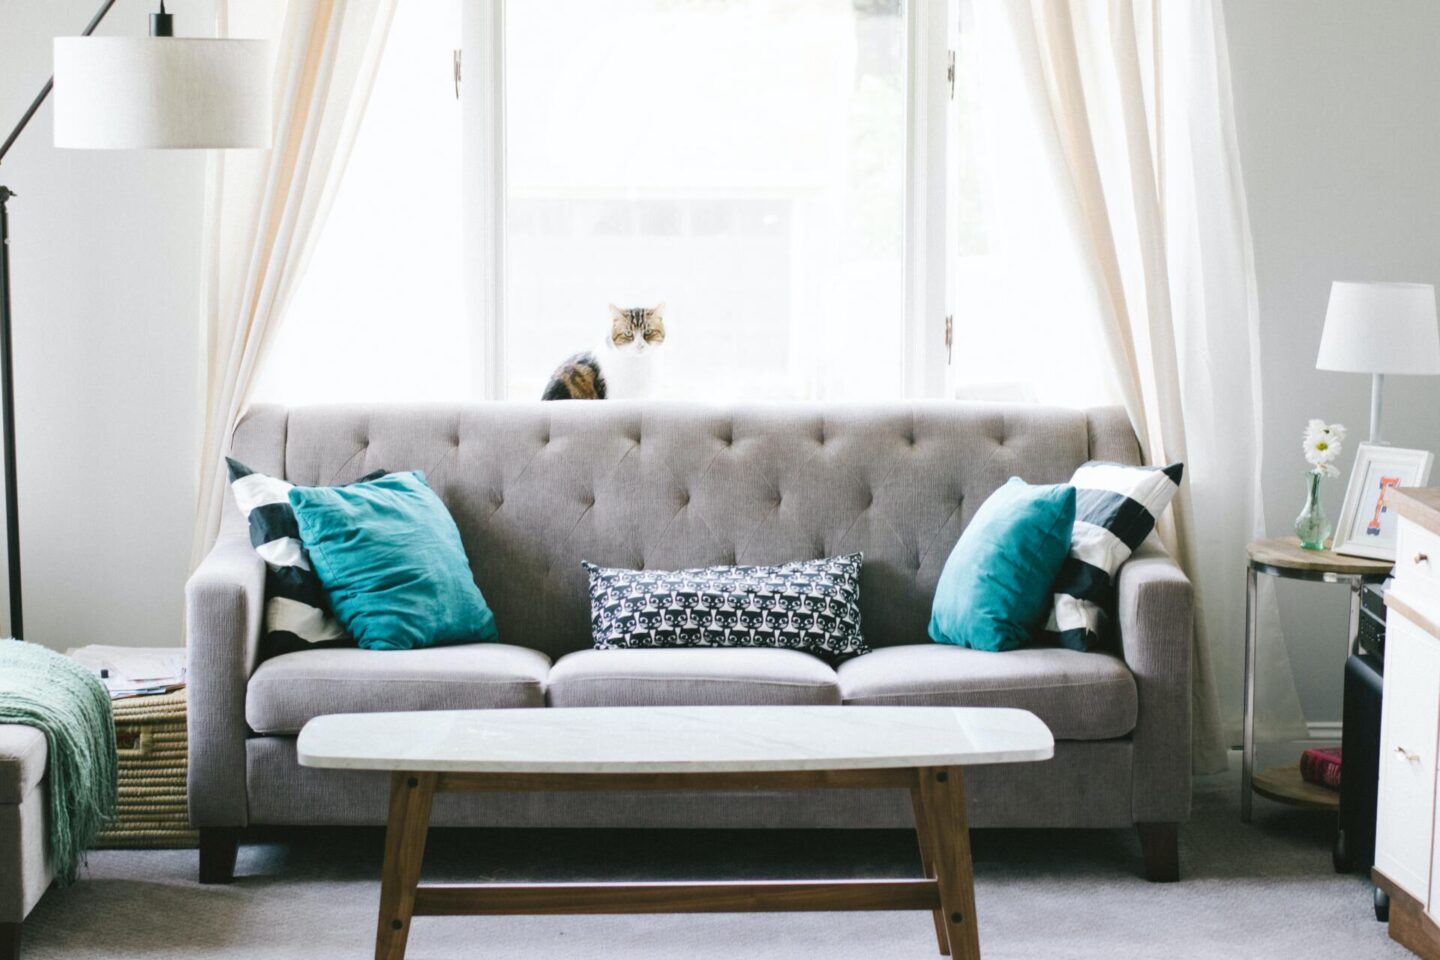 All you need to know about maintaining sofas and couches like a pro